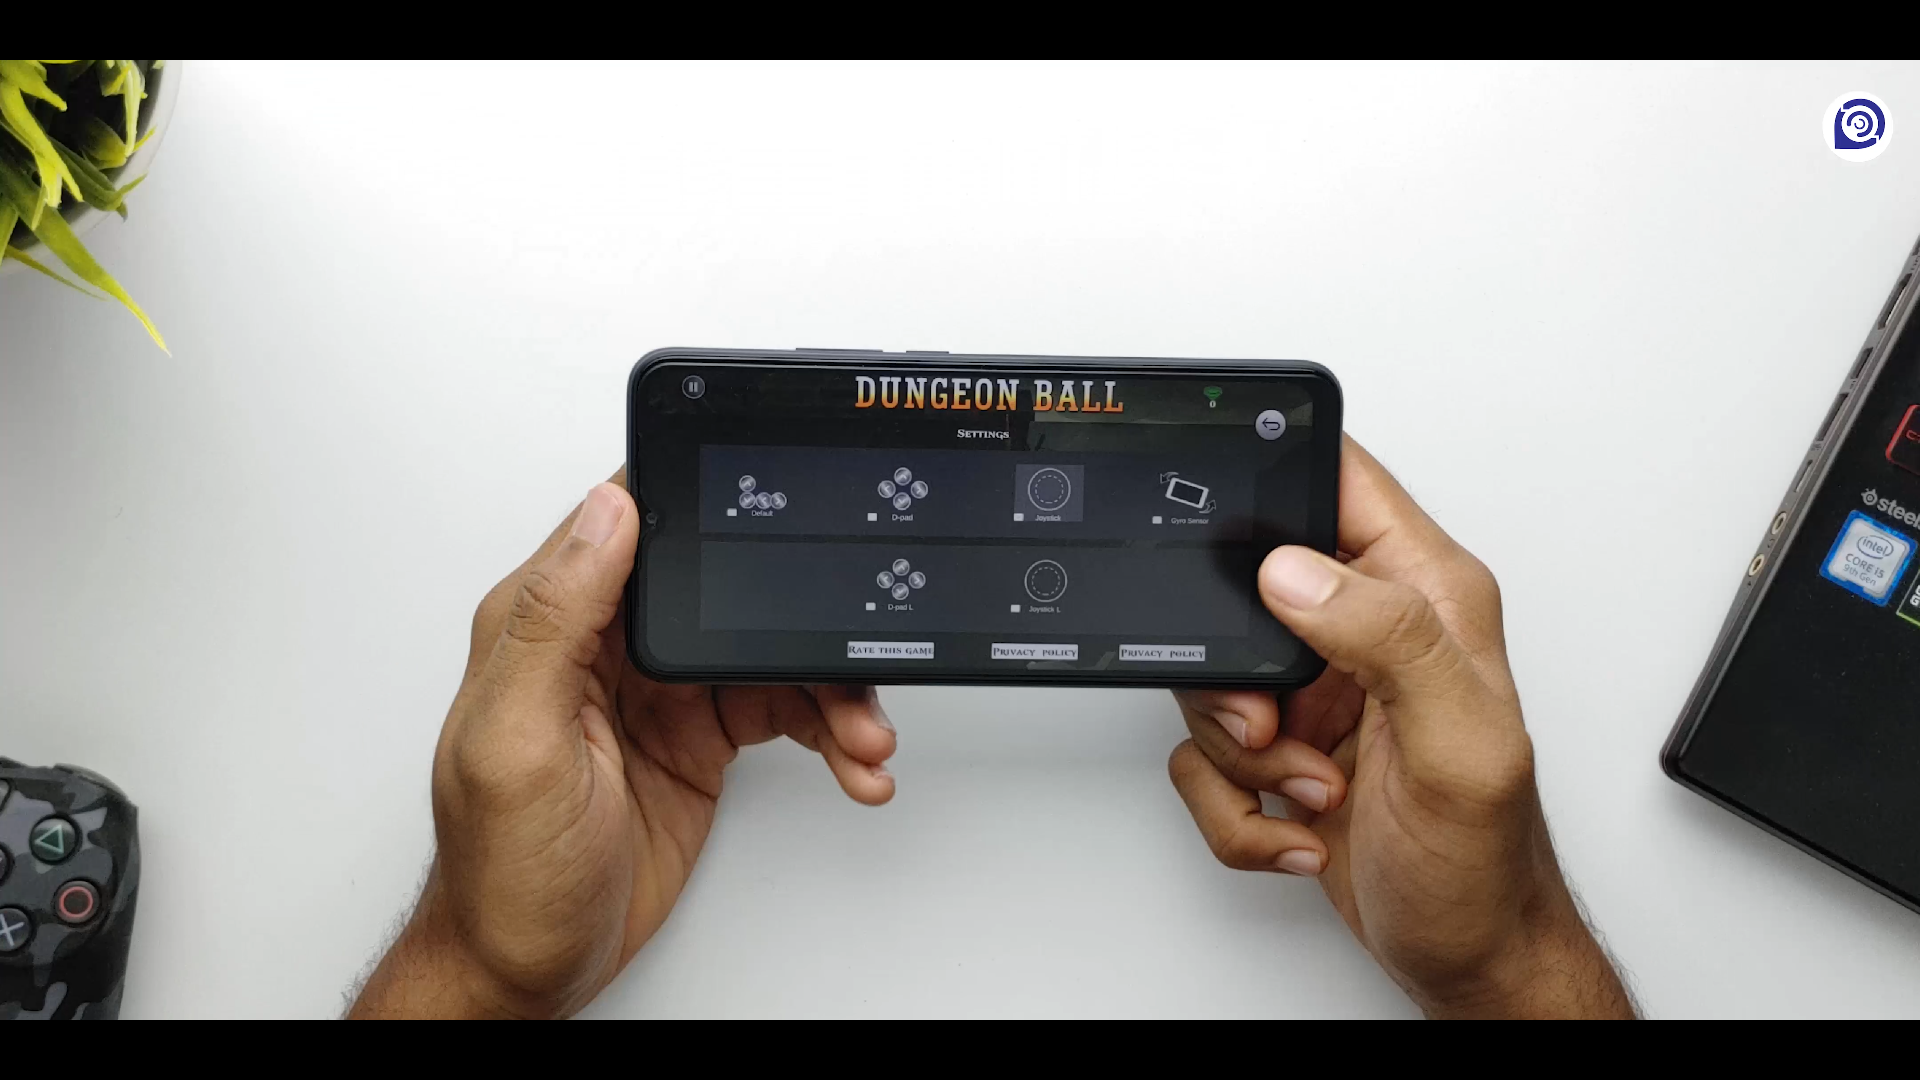 Can You Balance The Dungeon Ball?